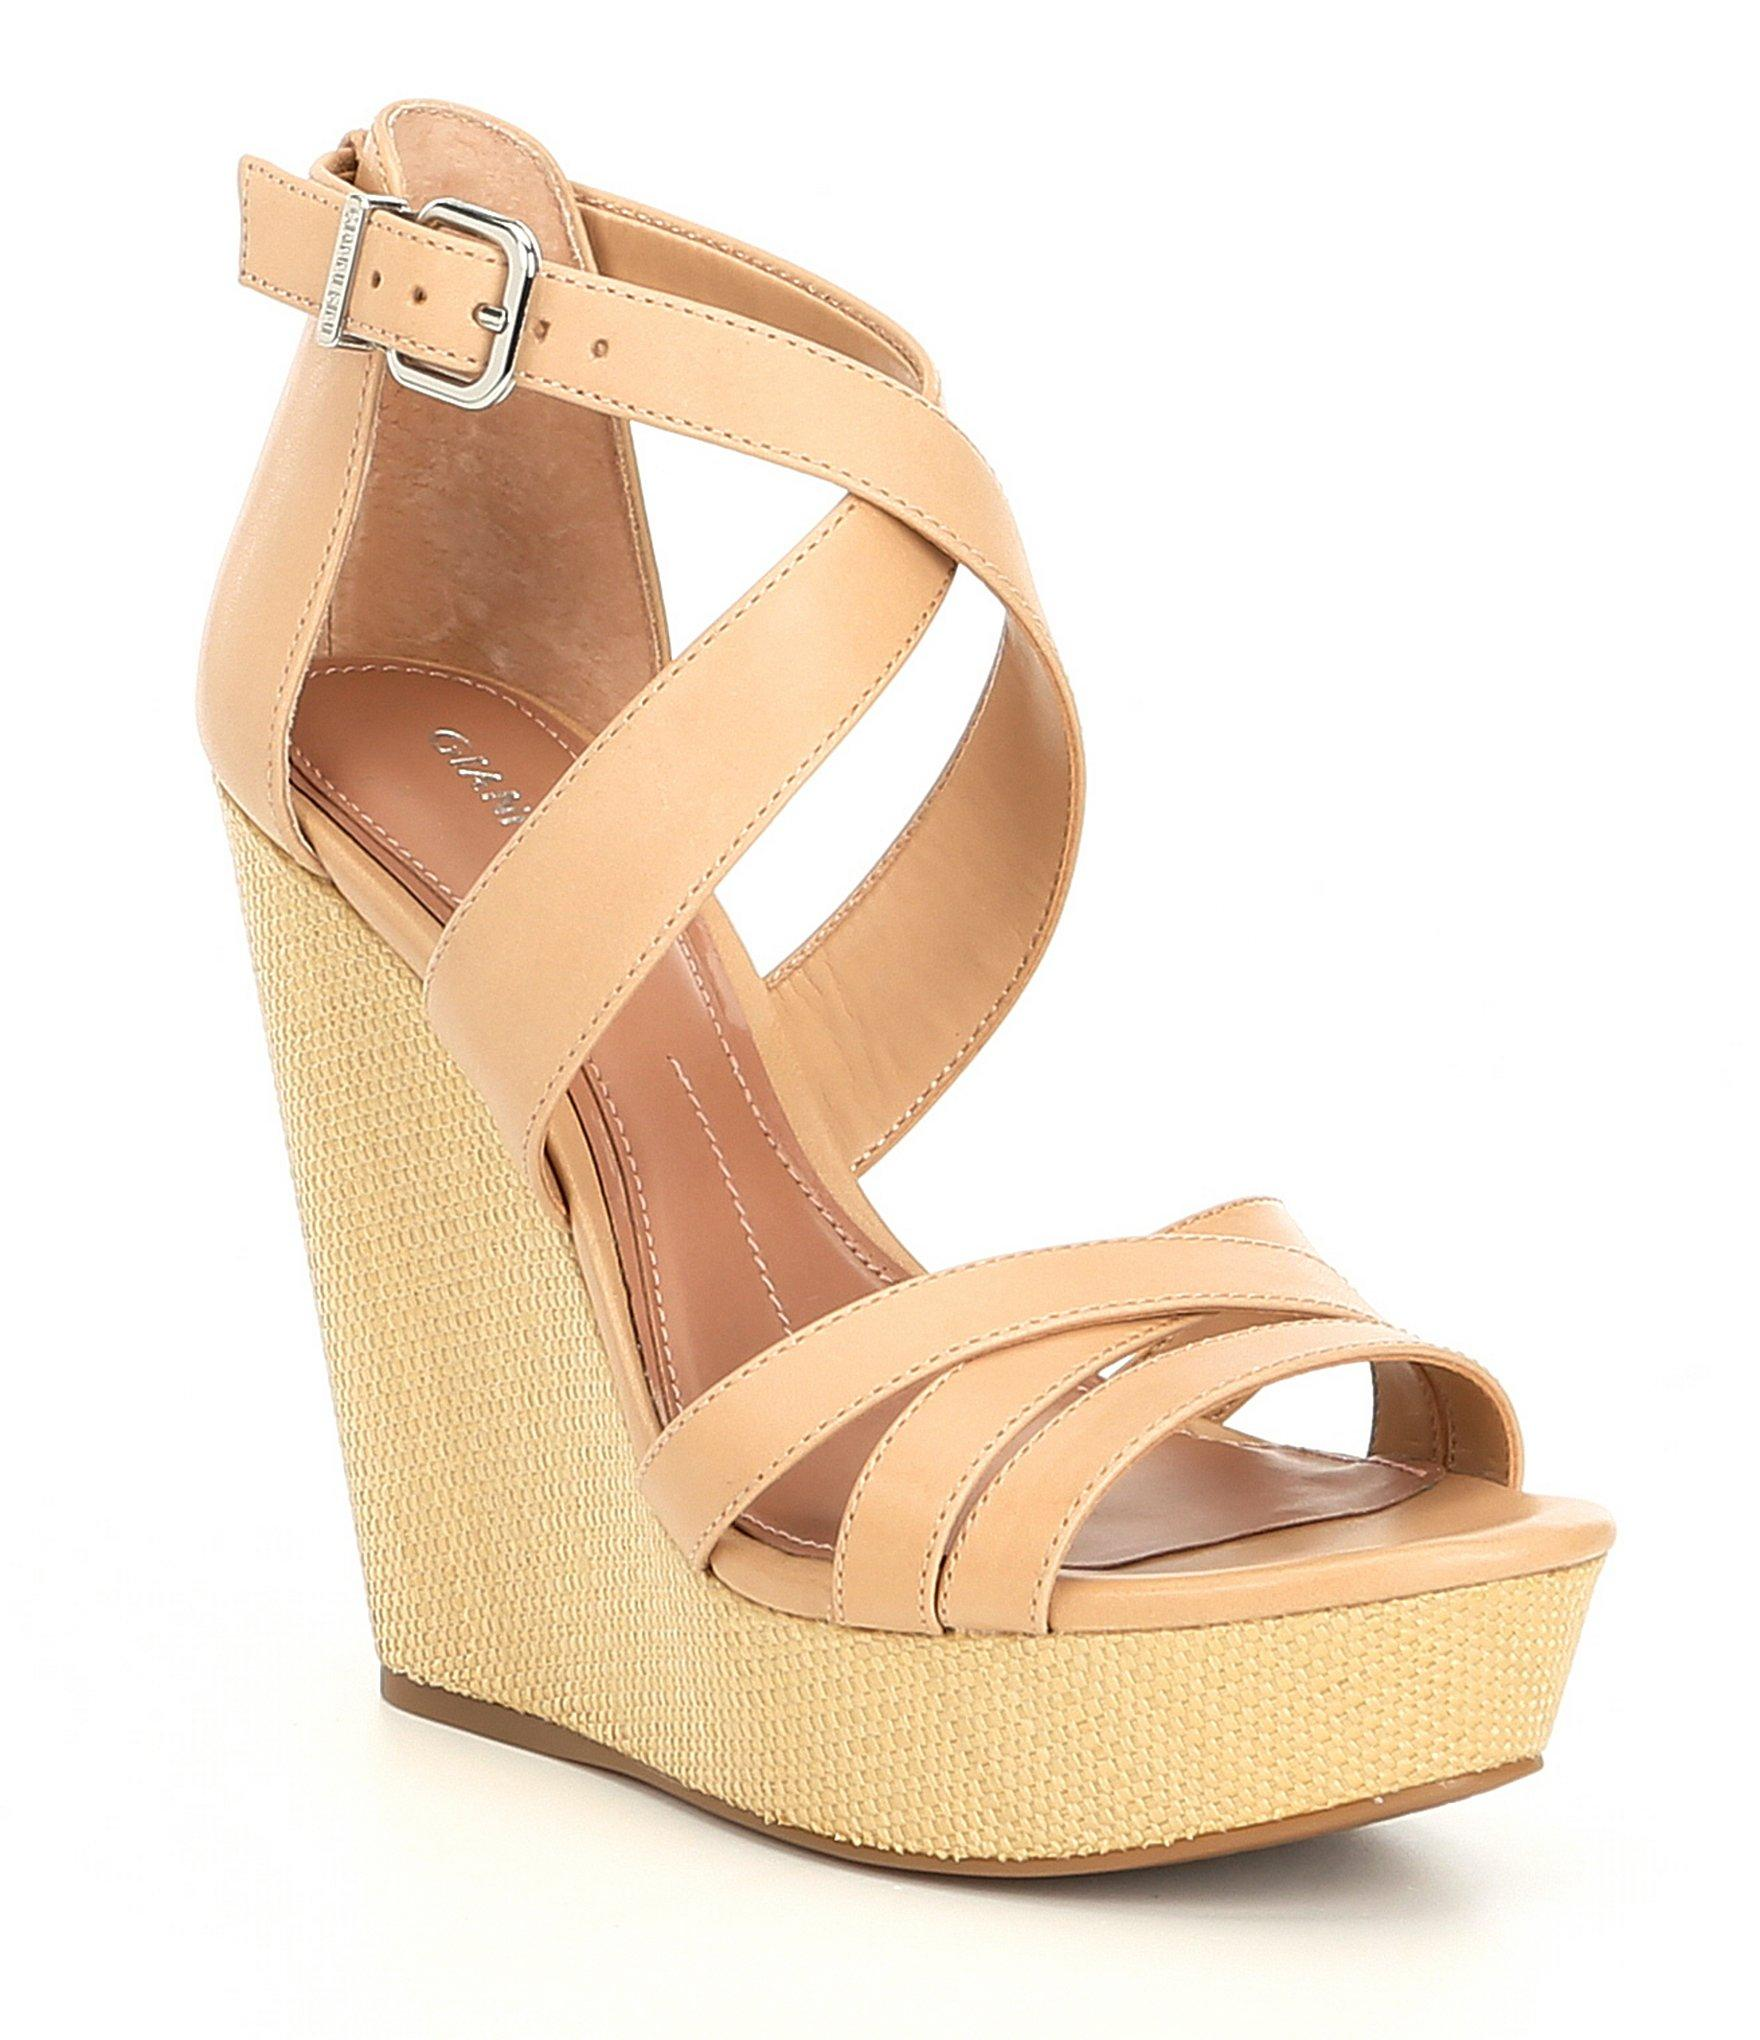 99c4441941c9 Lyst - Gianni Bini Jossilee Leather Banded Wedges in Natural